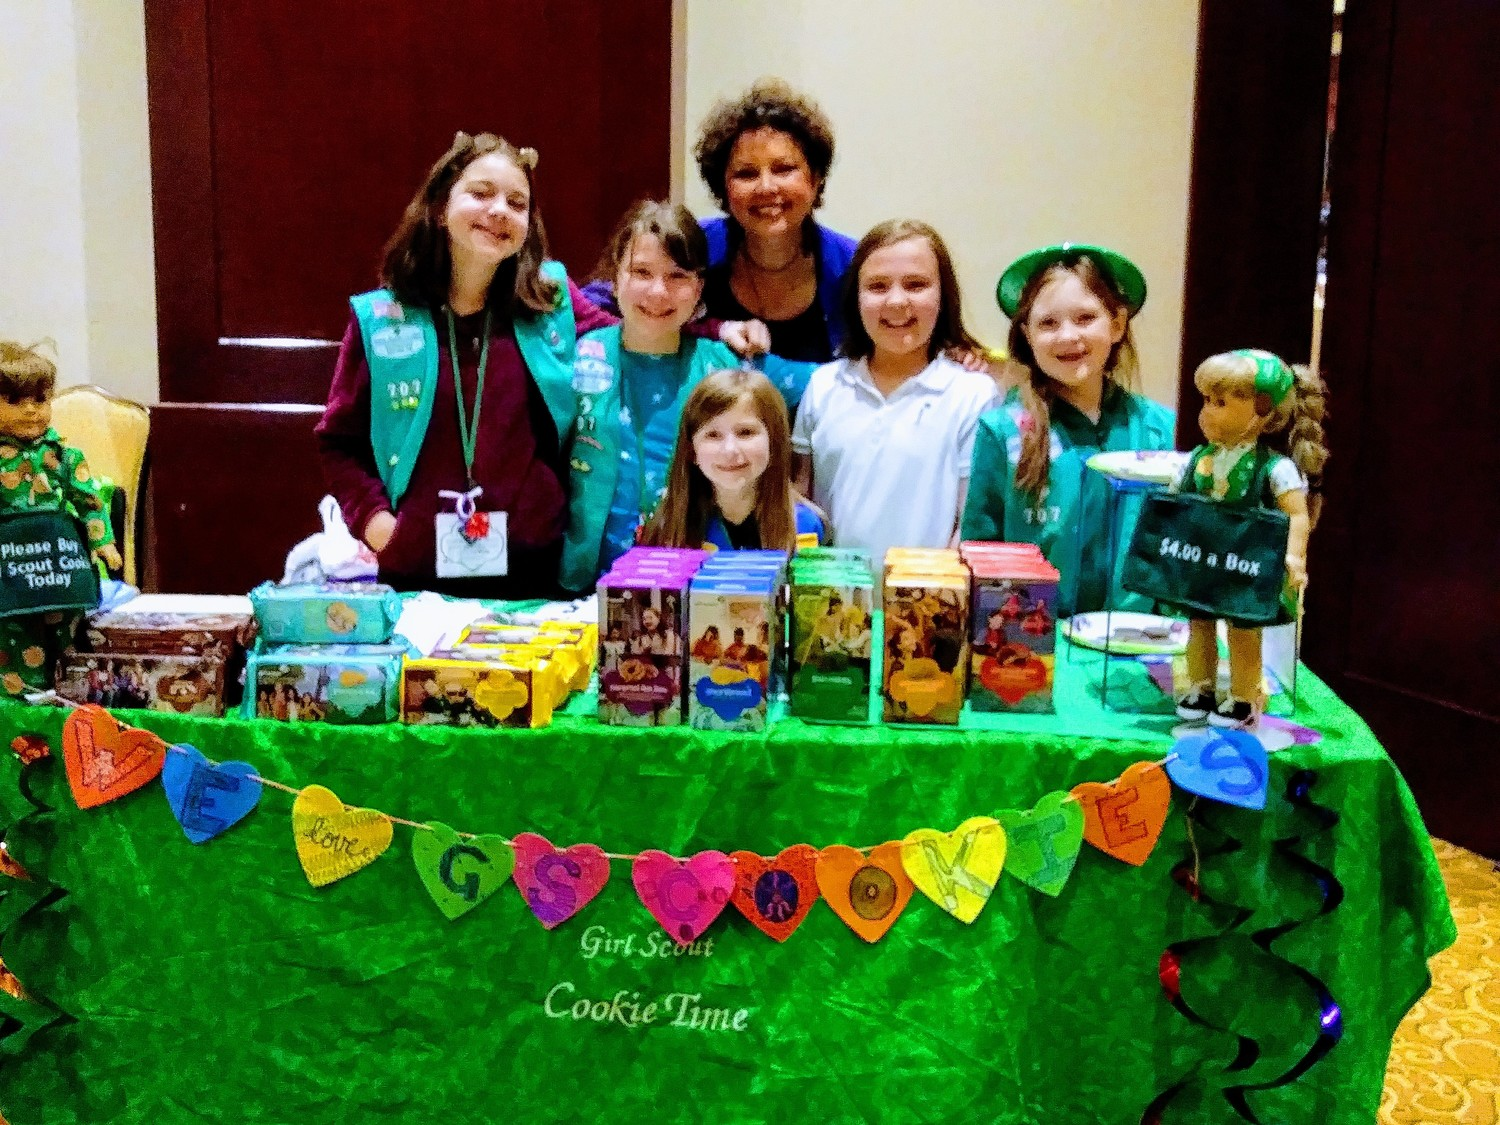 Seekonk Girl Scout Troop 707 with Barbara Morse Silva, NBC 10 News Anchor